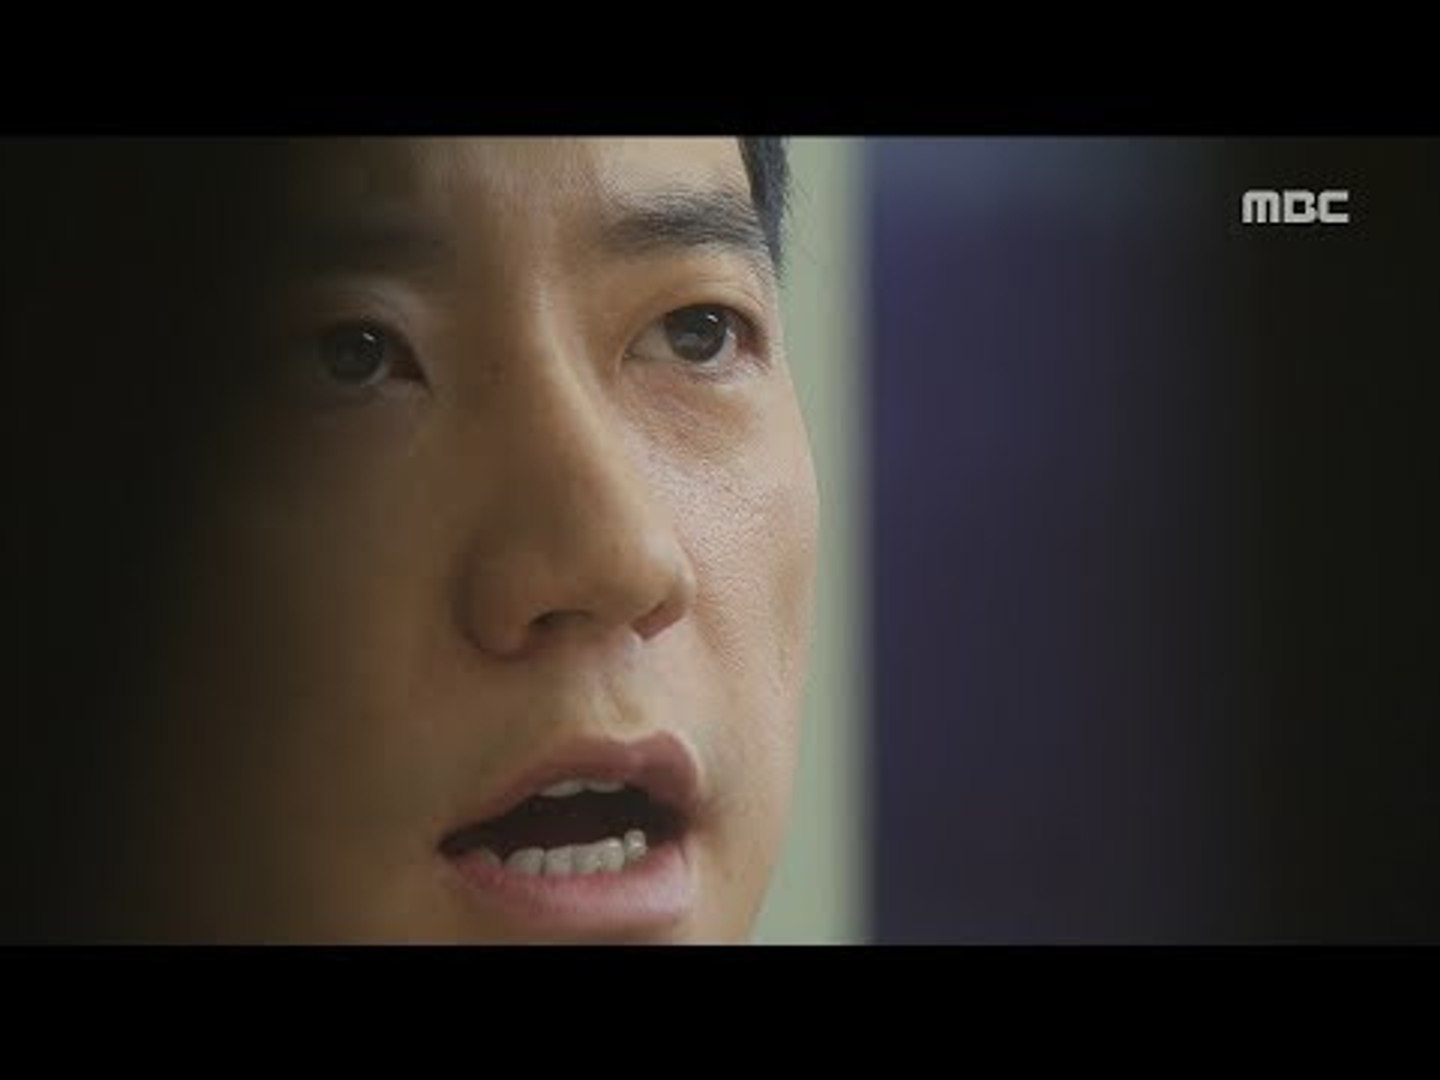 [White Tower]하얀거탑 UHD 리마스터드ep.27,28Kim Myung-min is angry at lawyers asking the truth